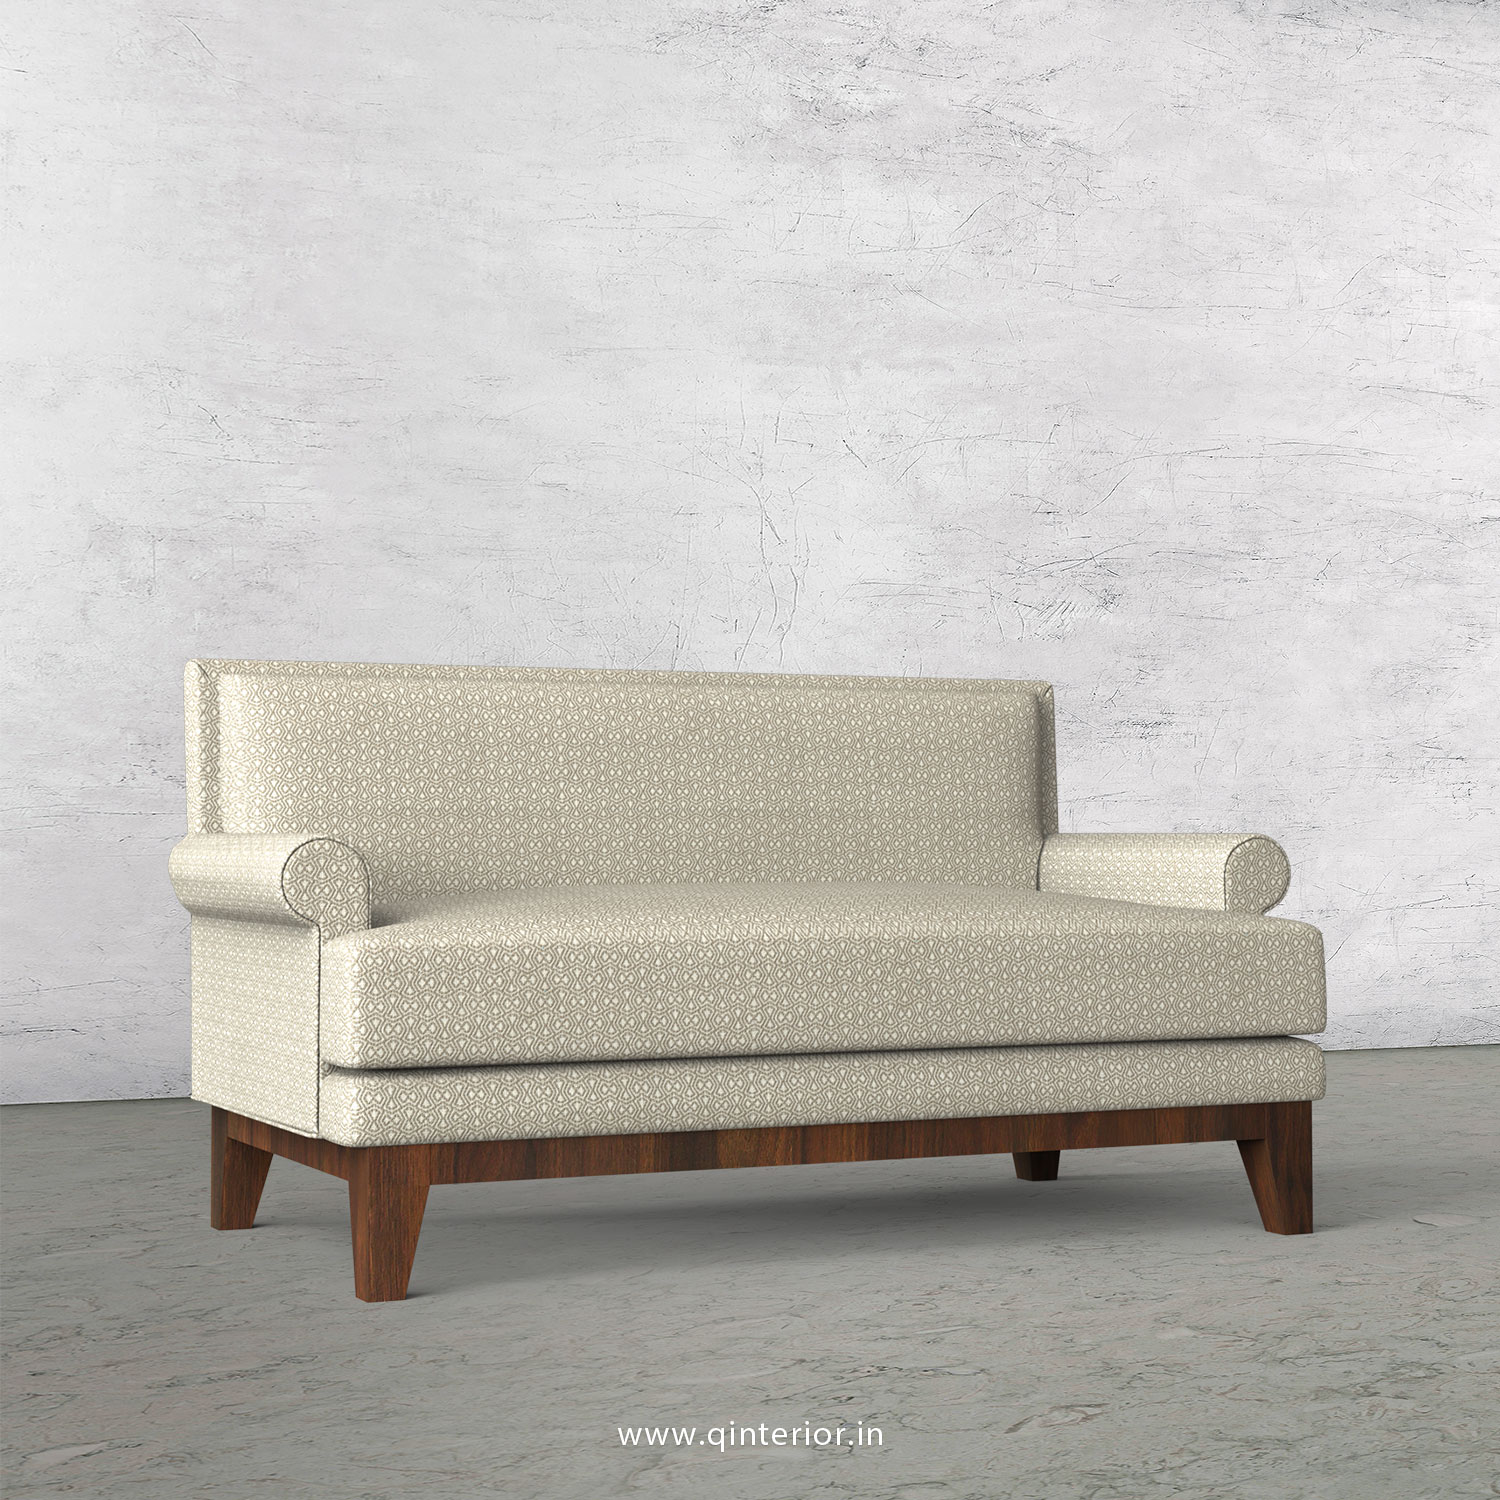 Aviana 2 Seater Sofa in Jacquard - SFA001 JQ37